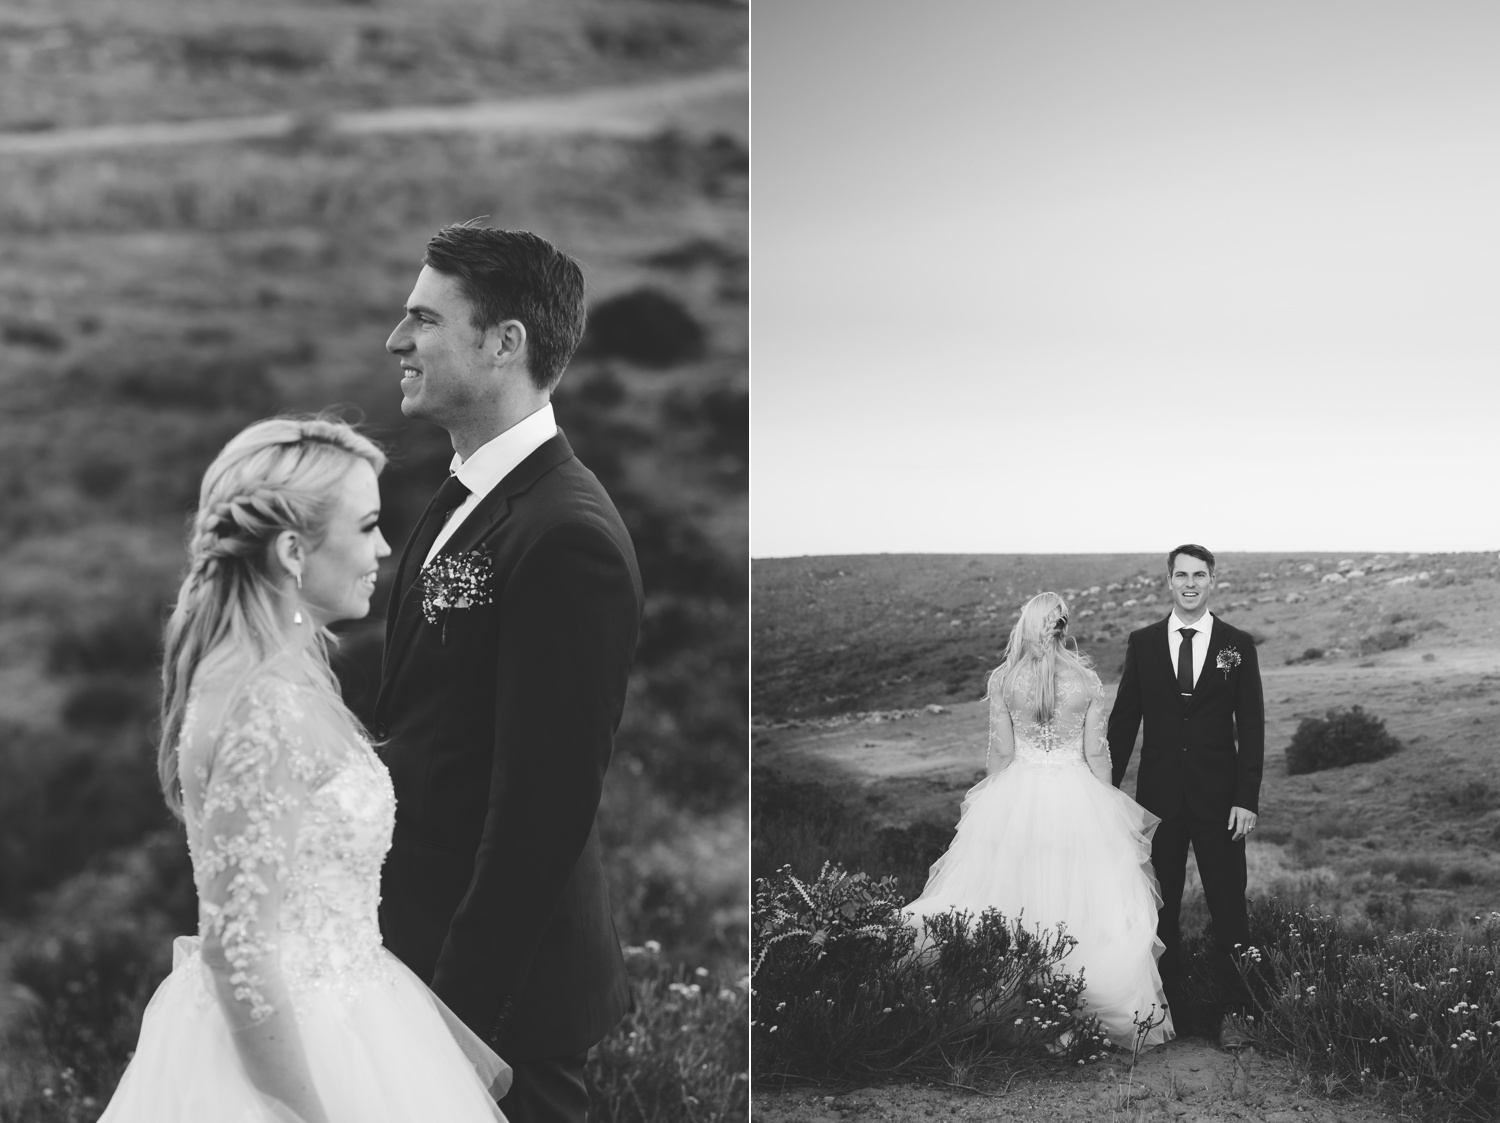 cathryn_warwick_wearecharlieray_hopewell_conservation_eastern_cape_wedding_0106.jpg